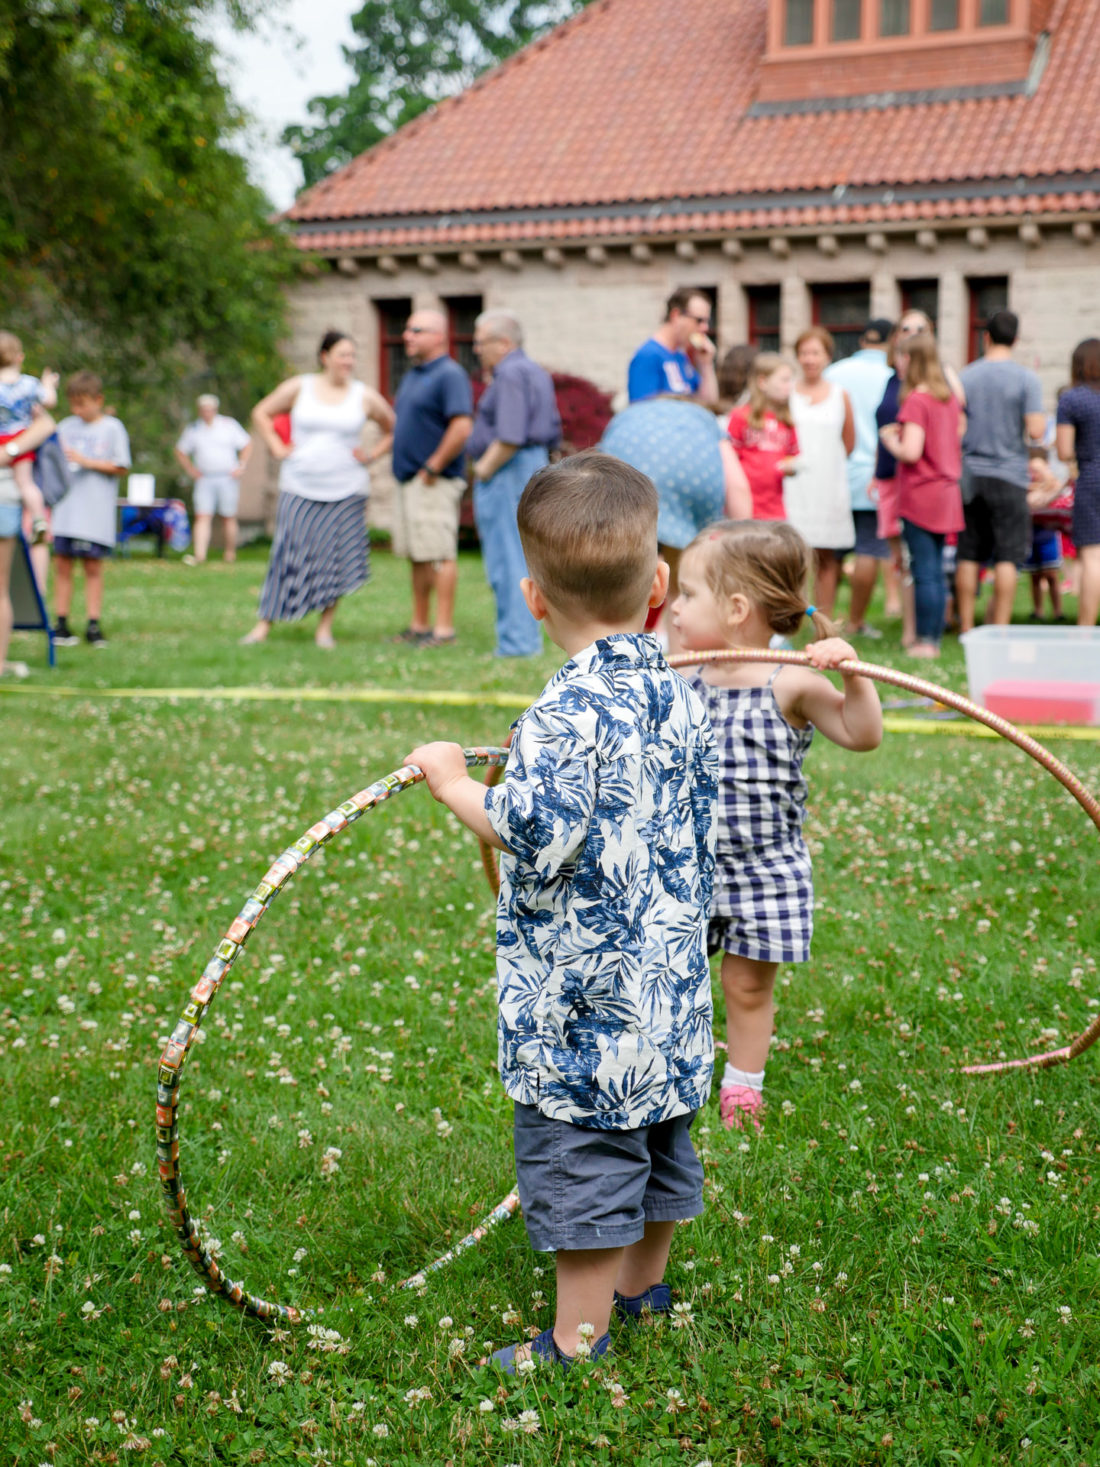 Major Martino wears a white and blue hawaiian shirt and plays with a hula hoop at a fourth of july lawn party